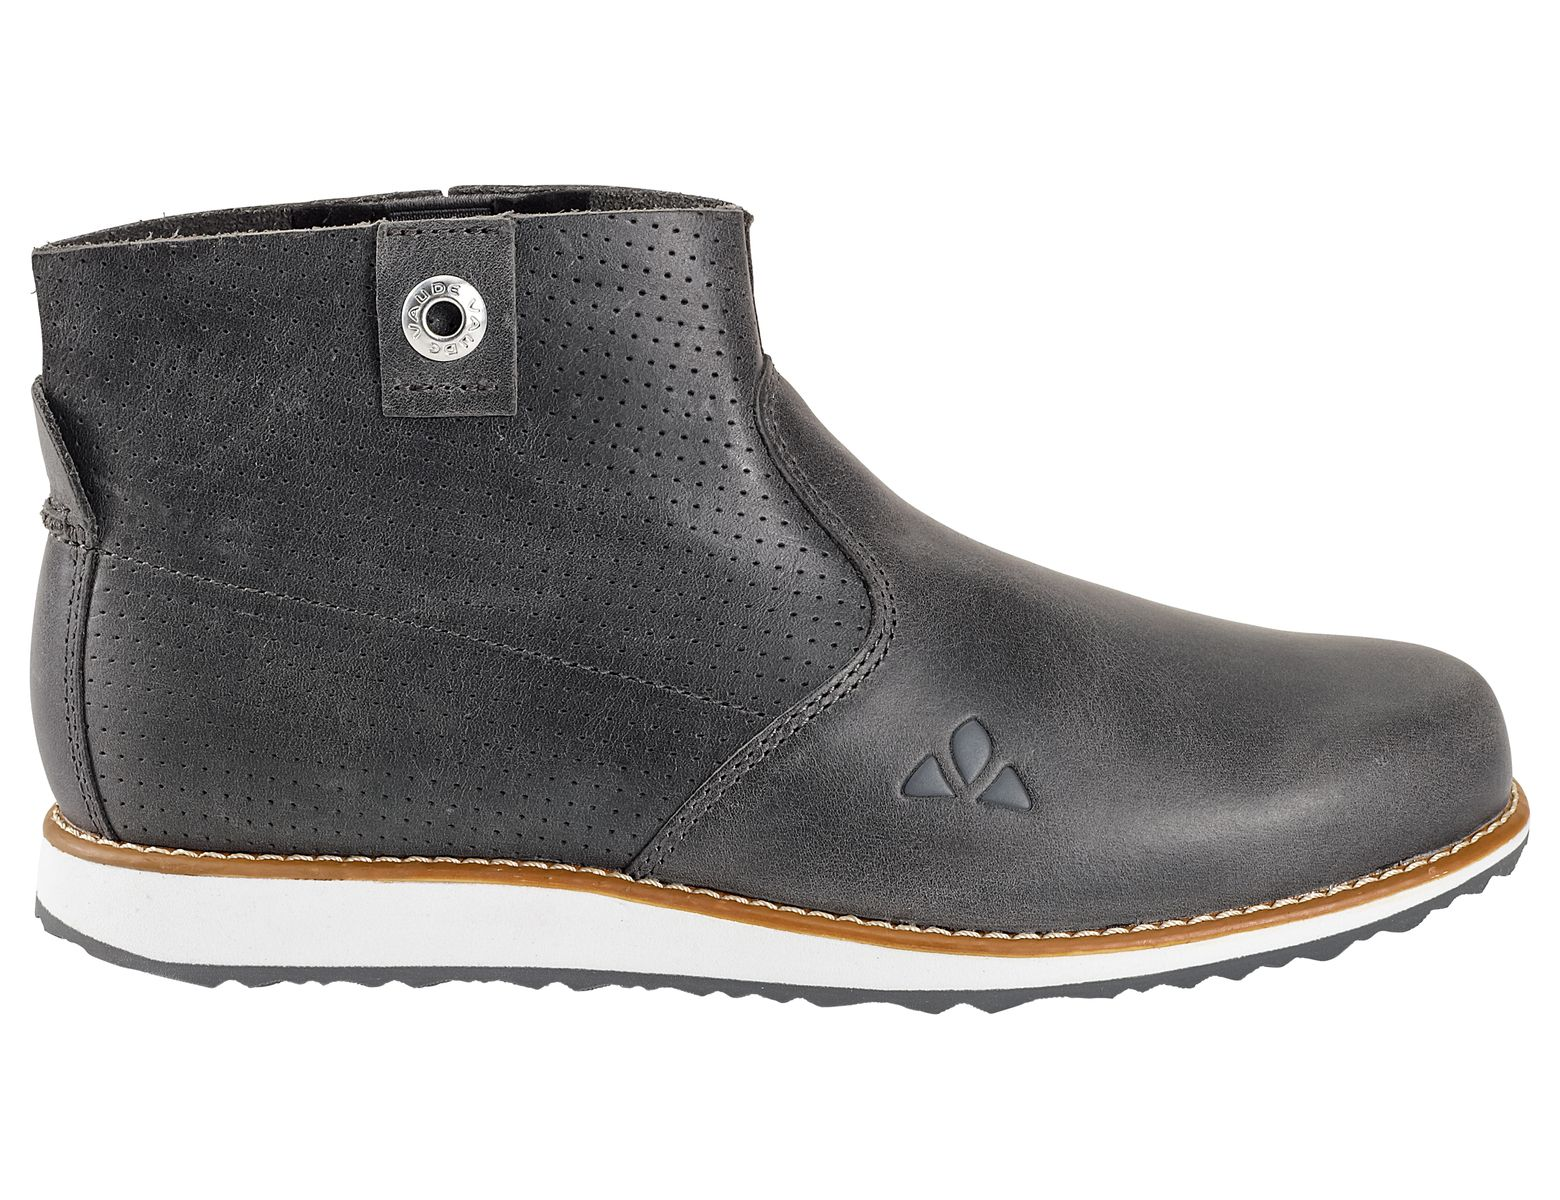 VAUDE UBN Solna Mid Casual Anthracite Women s shoesvaude bike shoesamazing selection